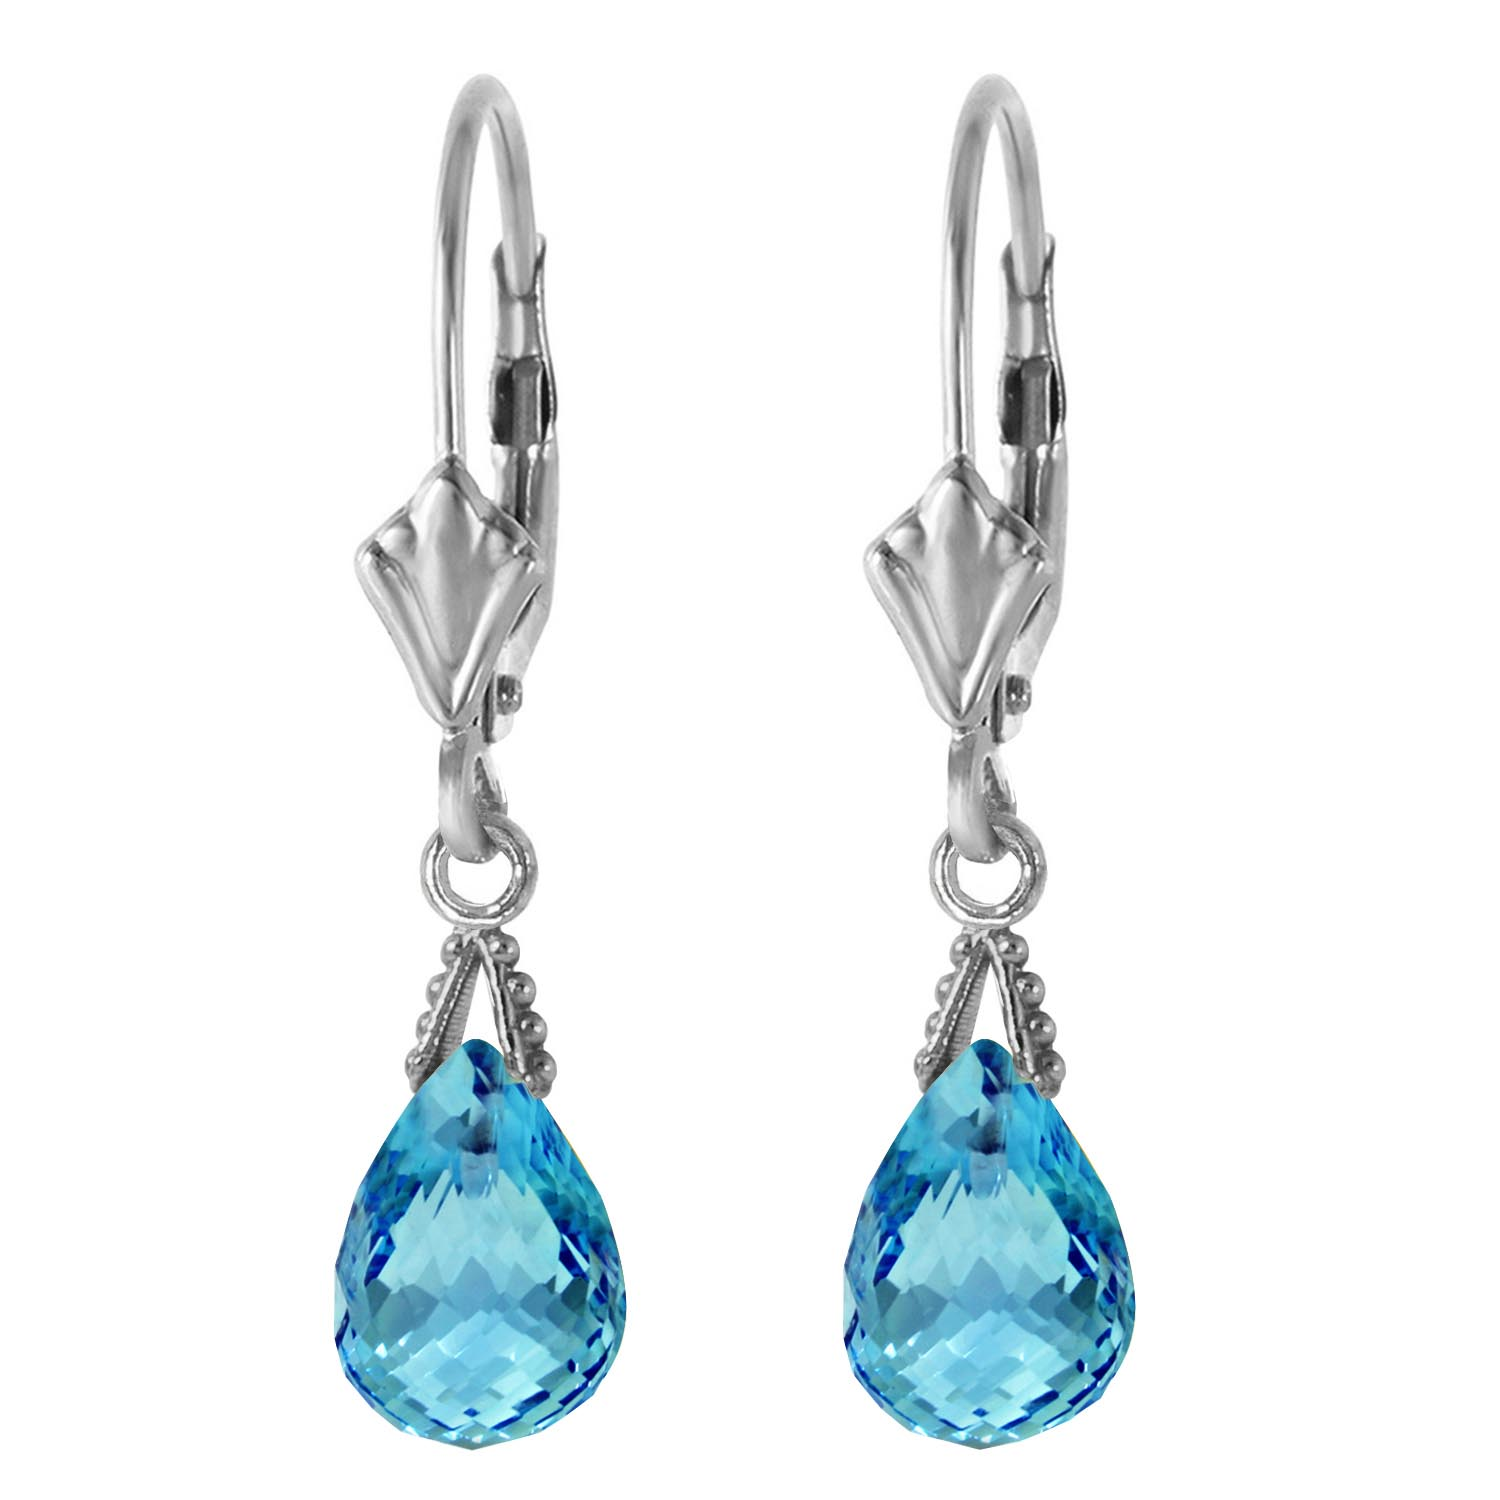 Blue Topaz Droplet Briolette Earrings 4.5ctw in 9ct White Gold